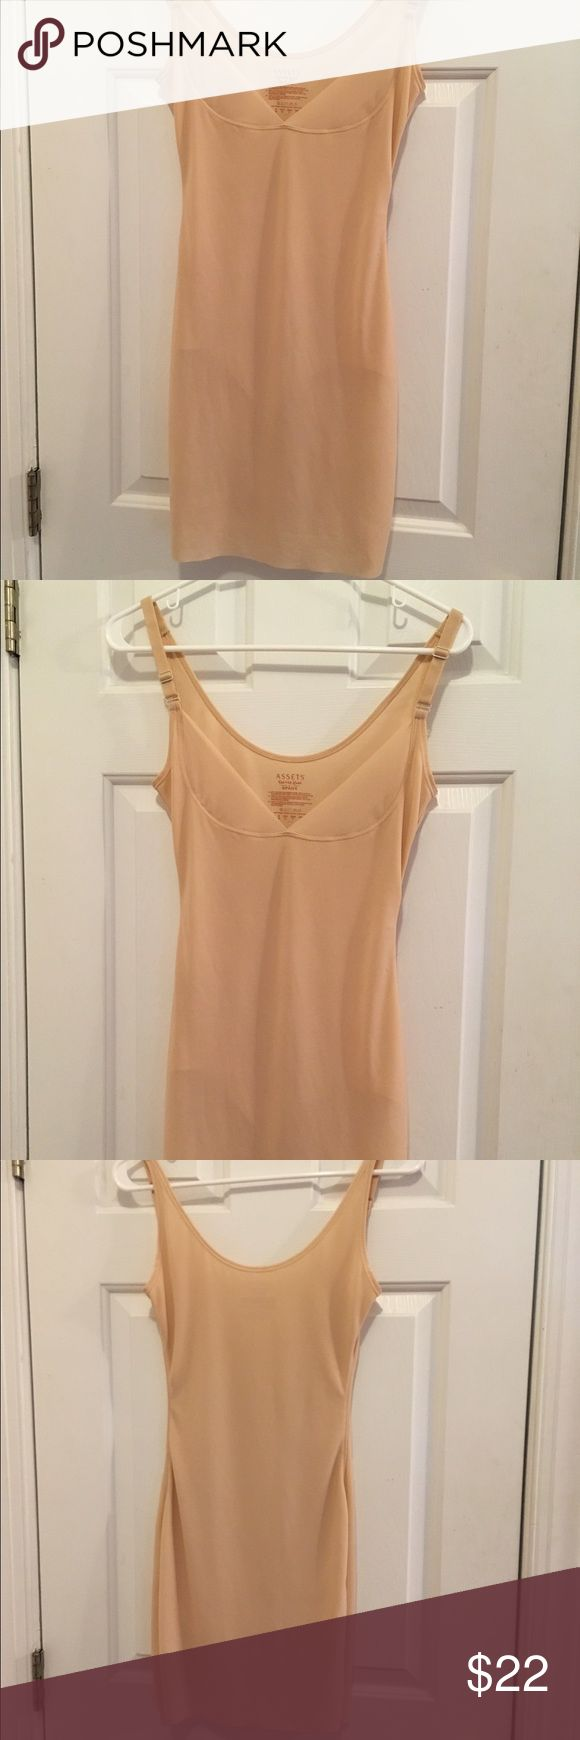 Size medium Assets by Spanx body shaper Nude color size medium body shaper by assets by Spanx, excellent condition and rarely worn. SPANX Intimates & Sleepwear Shapewear